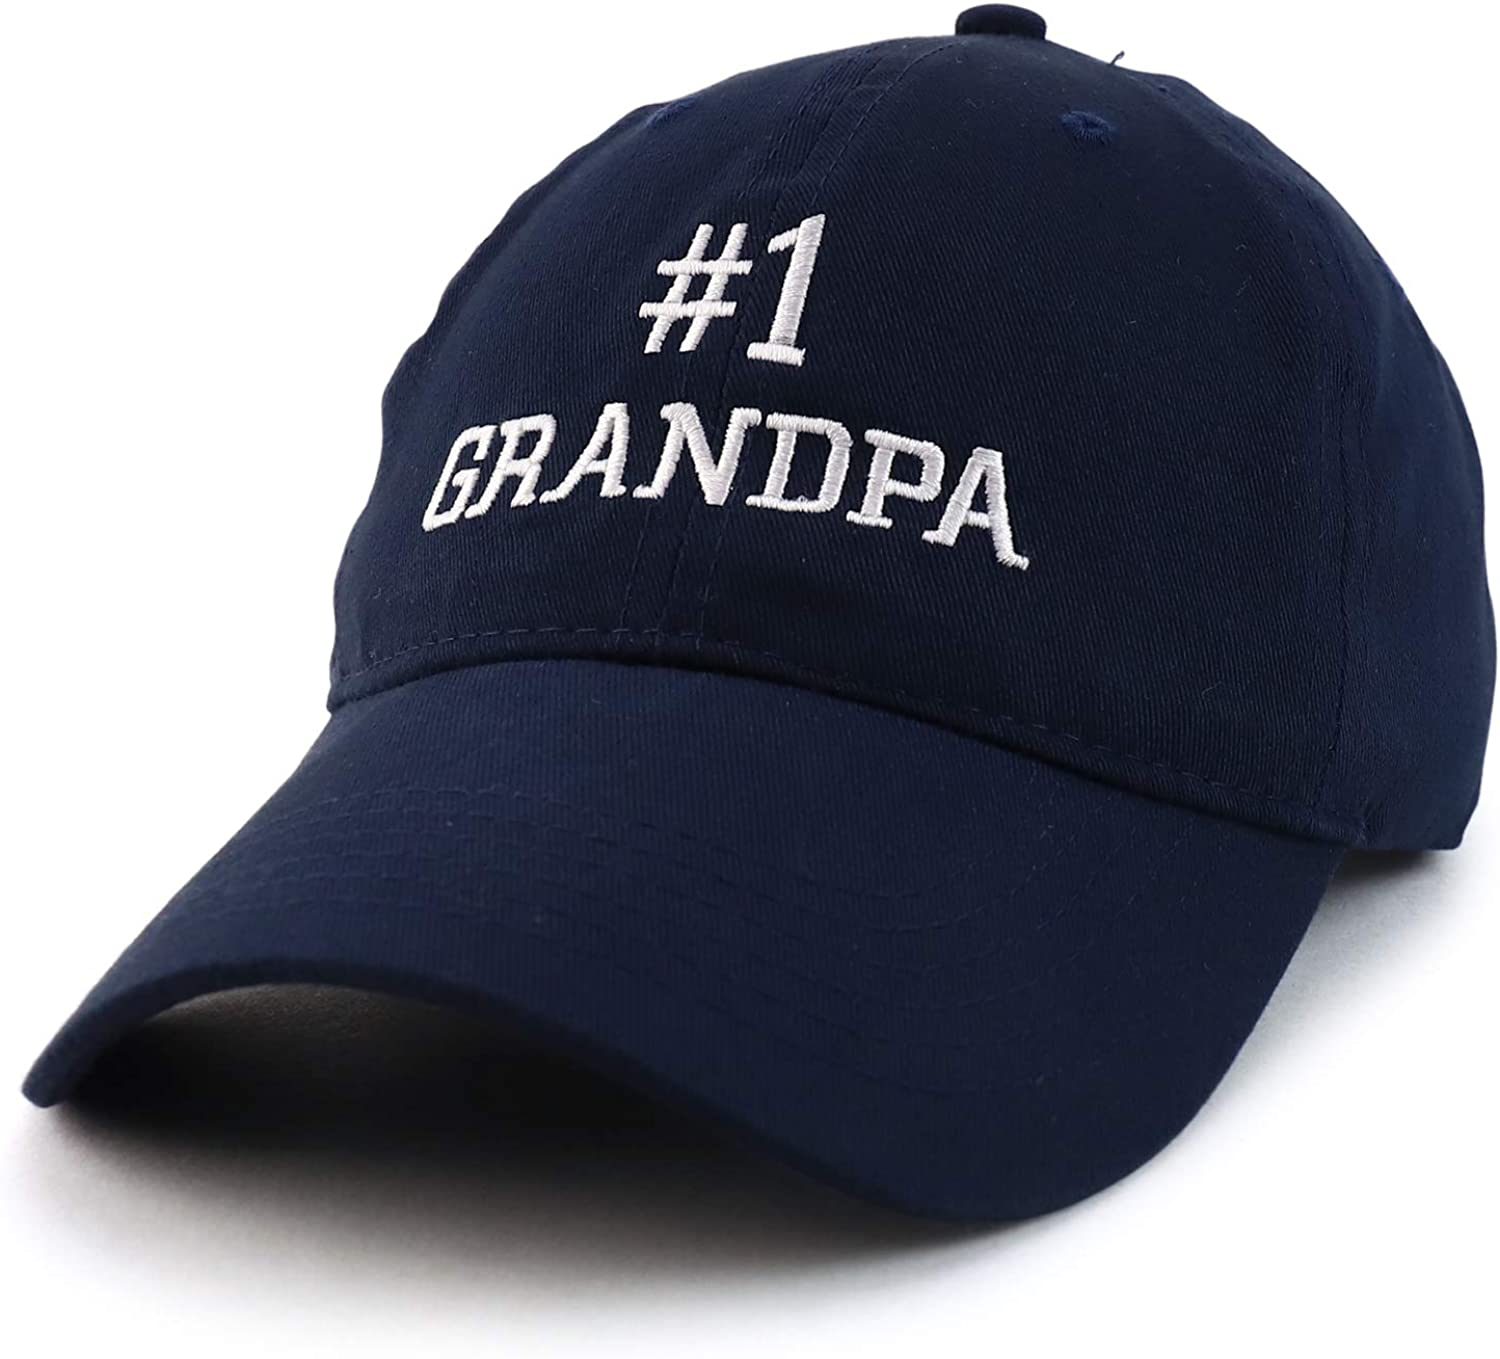 Trendy Apparel Shop Number 1 Grandpa Embroidered Soft Crown 100% Brushed Cotton Cap